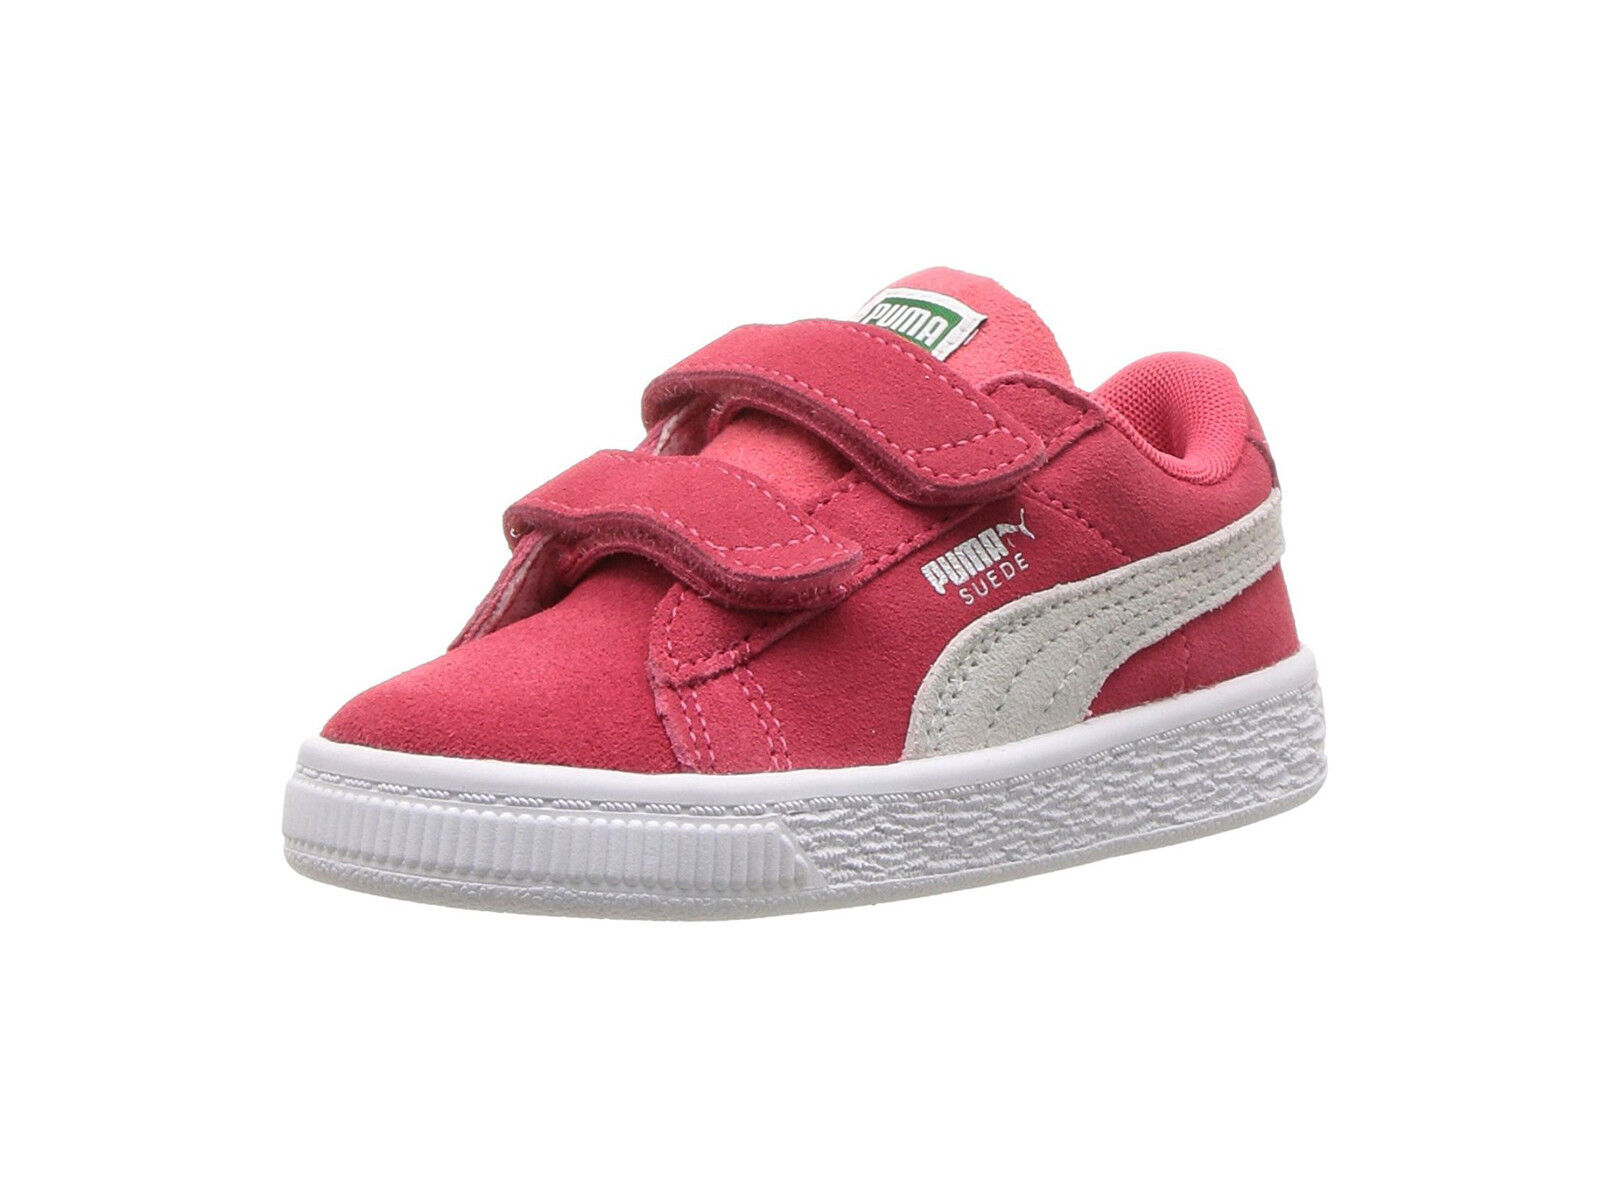 PUMA Suede Classic V Strap Paradise Pink White Sneakers Infants Toddler Shoes